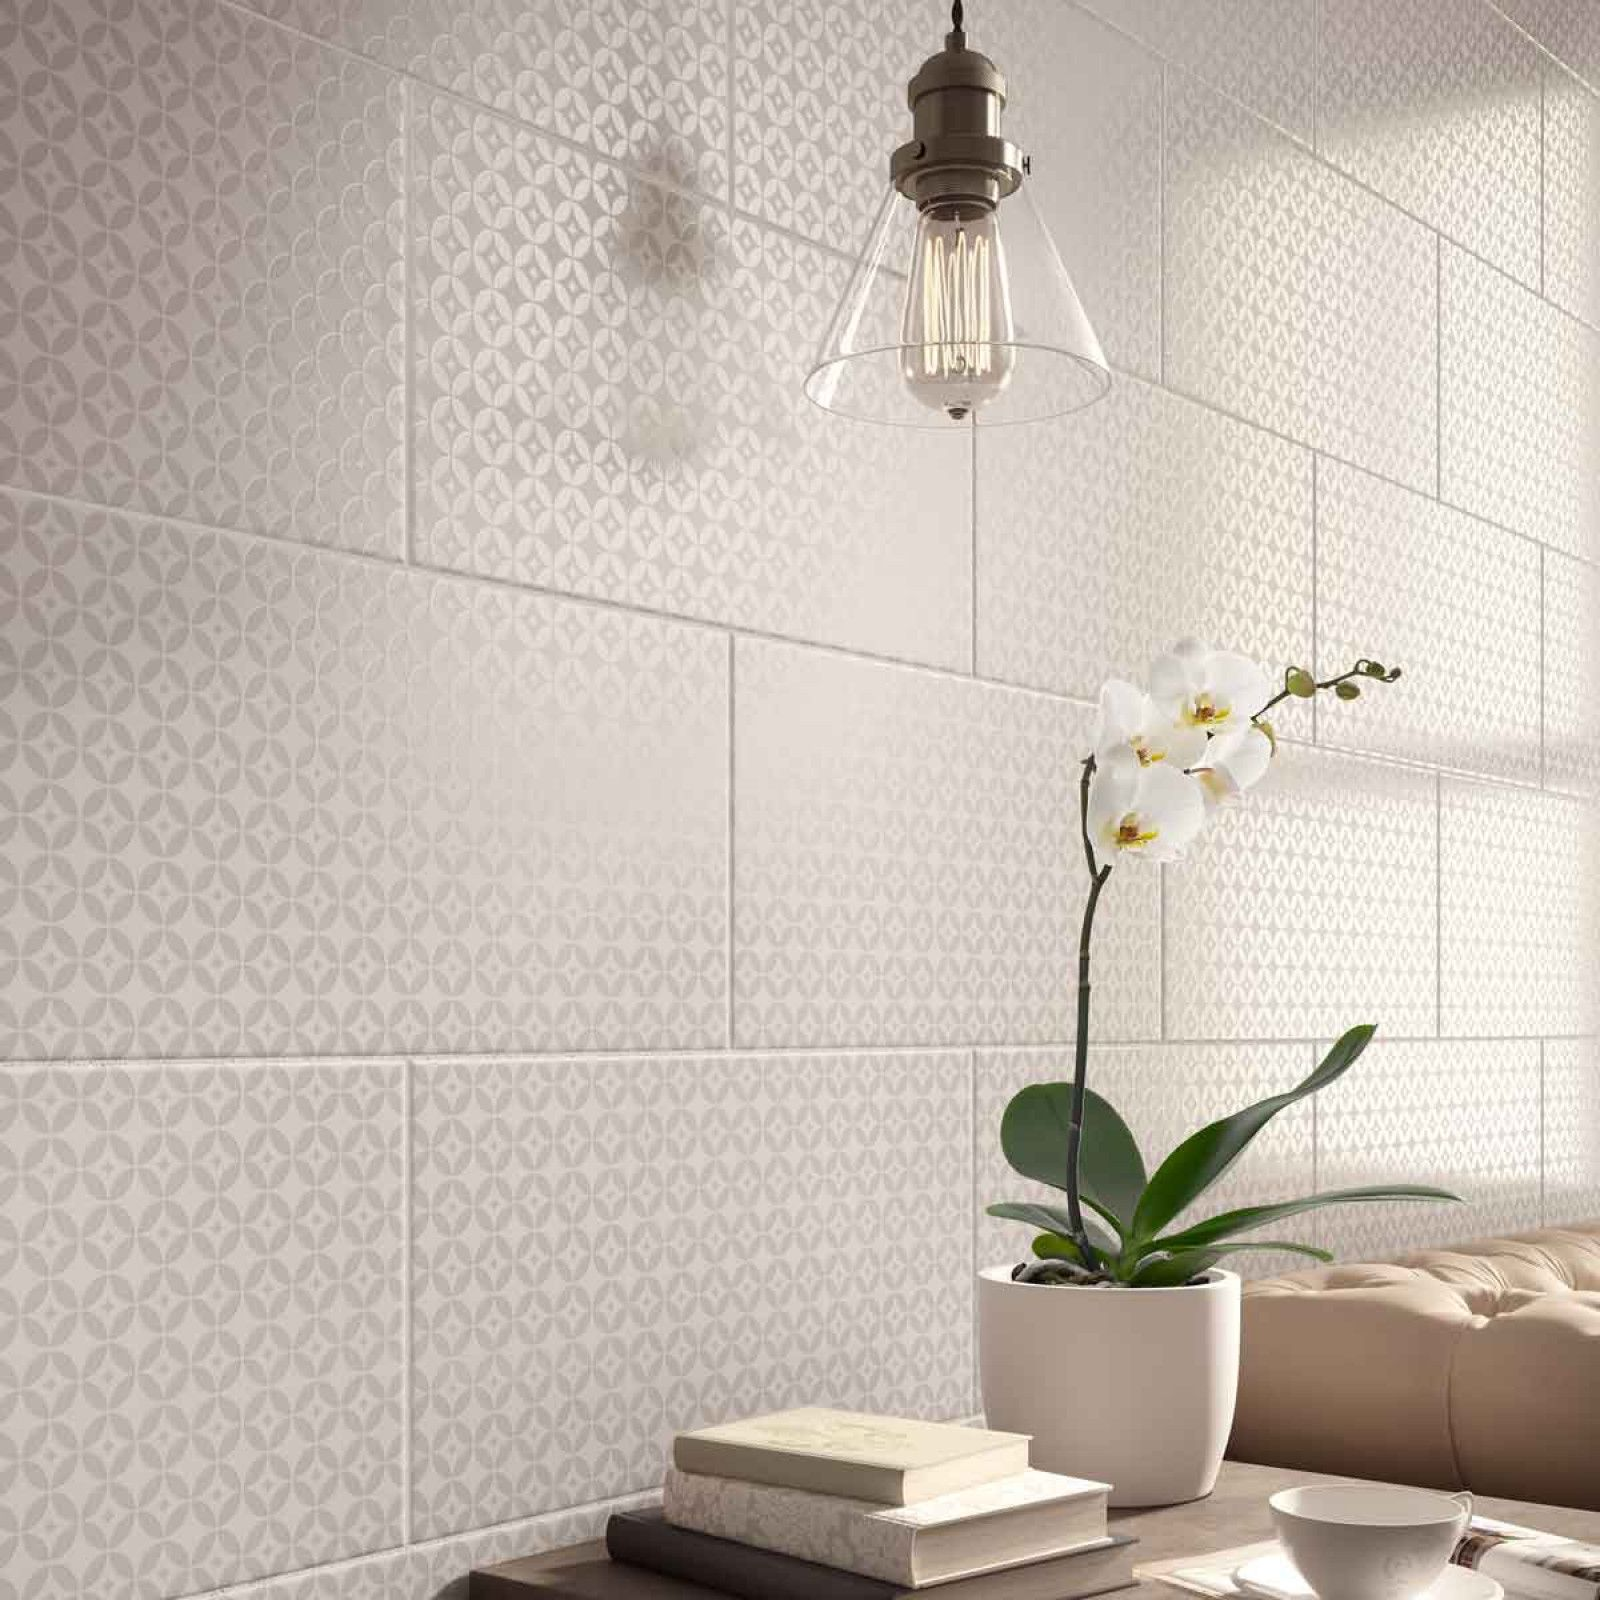 Finsbury gloss ceramic wall tiles are part of the white collection finsbury gloss ceramic wall tiles are part of the white collection and create a calm atmosphere dailygadgetfo Images